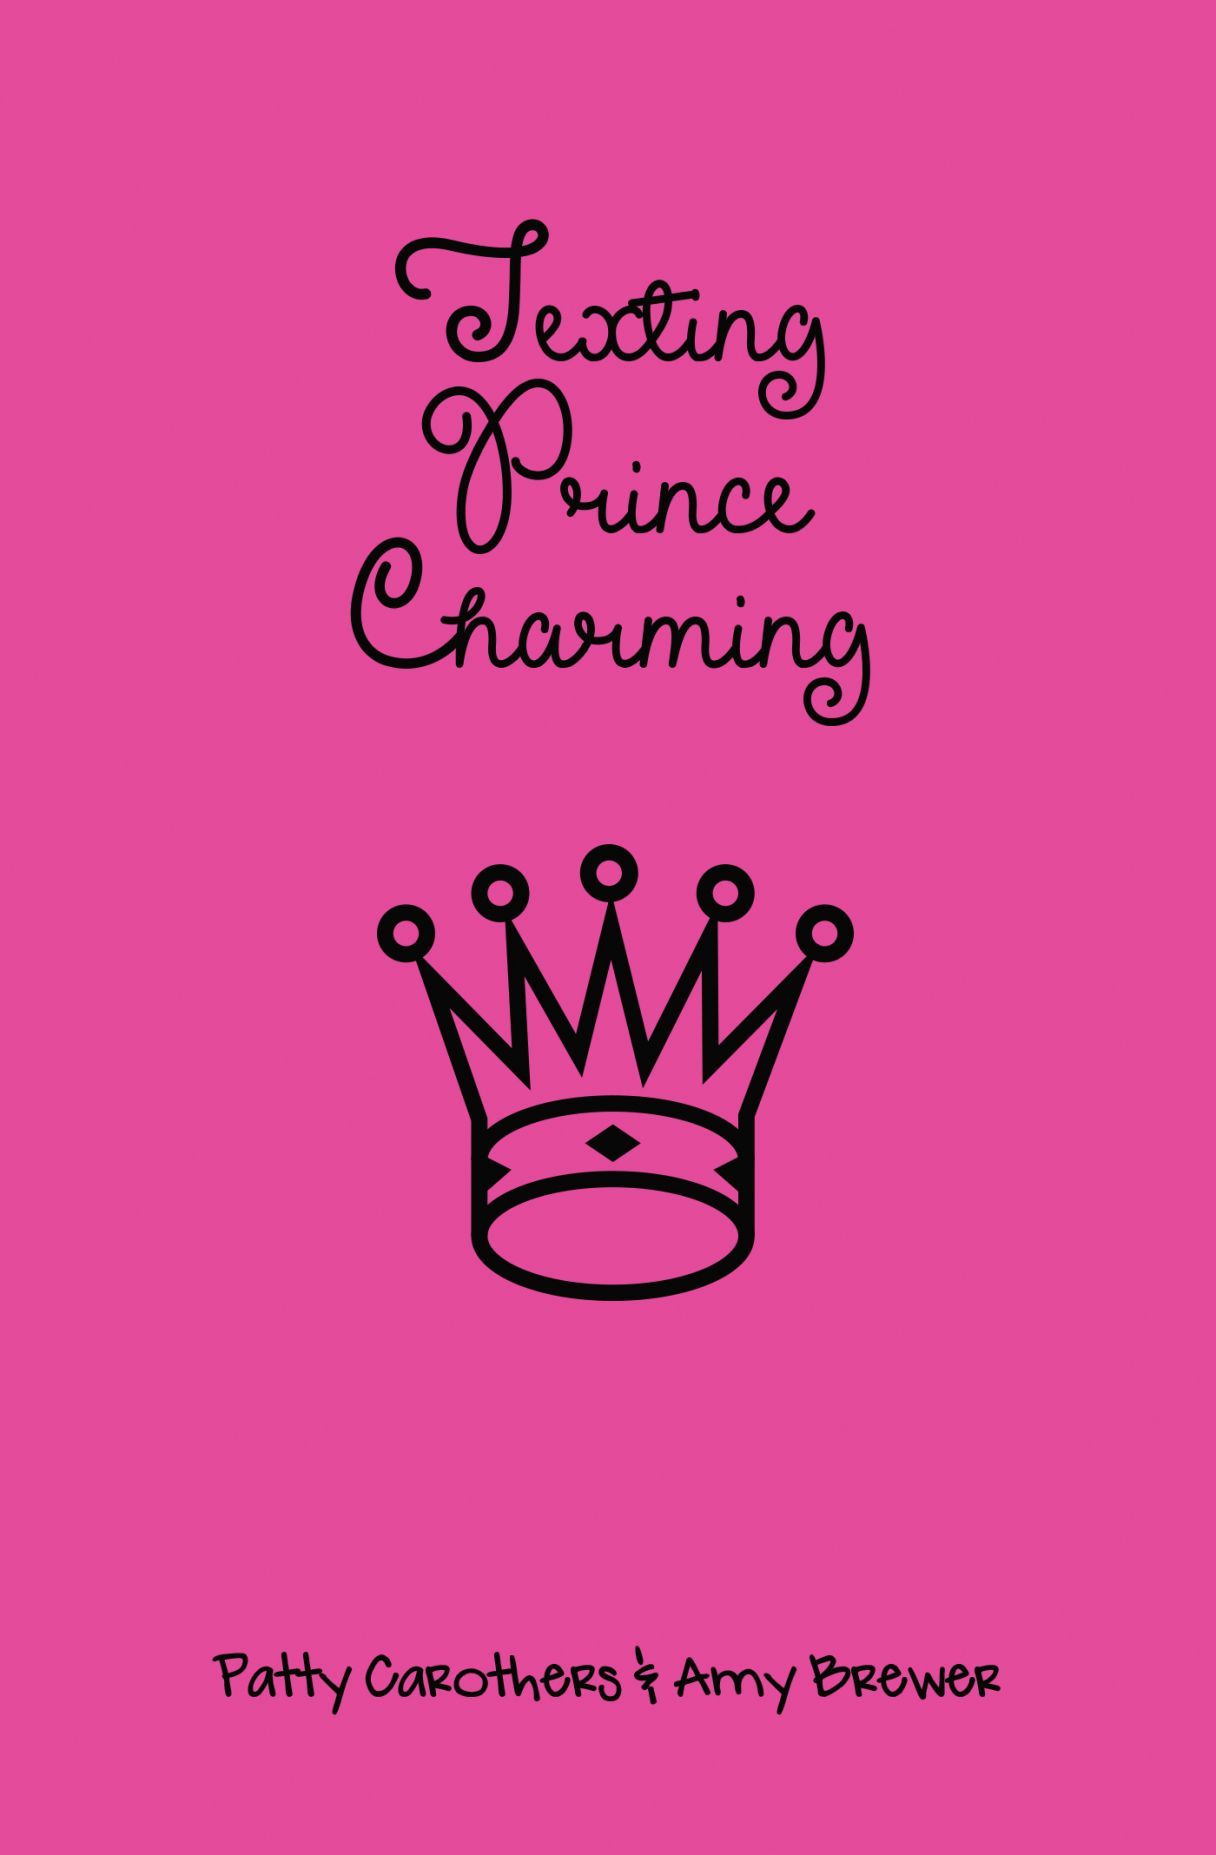 Texting Prince Charming by Patty Carothers and Amy Brewer